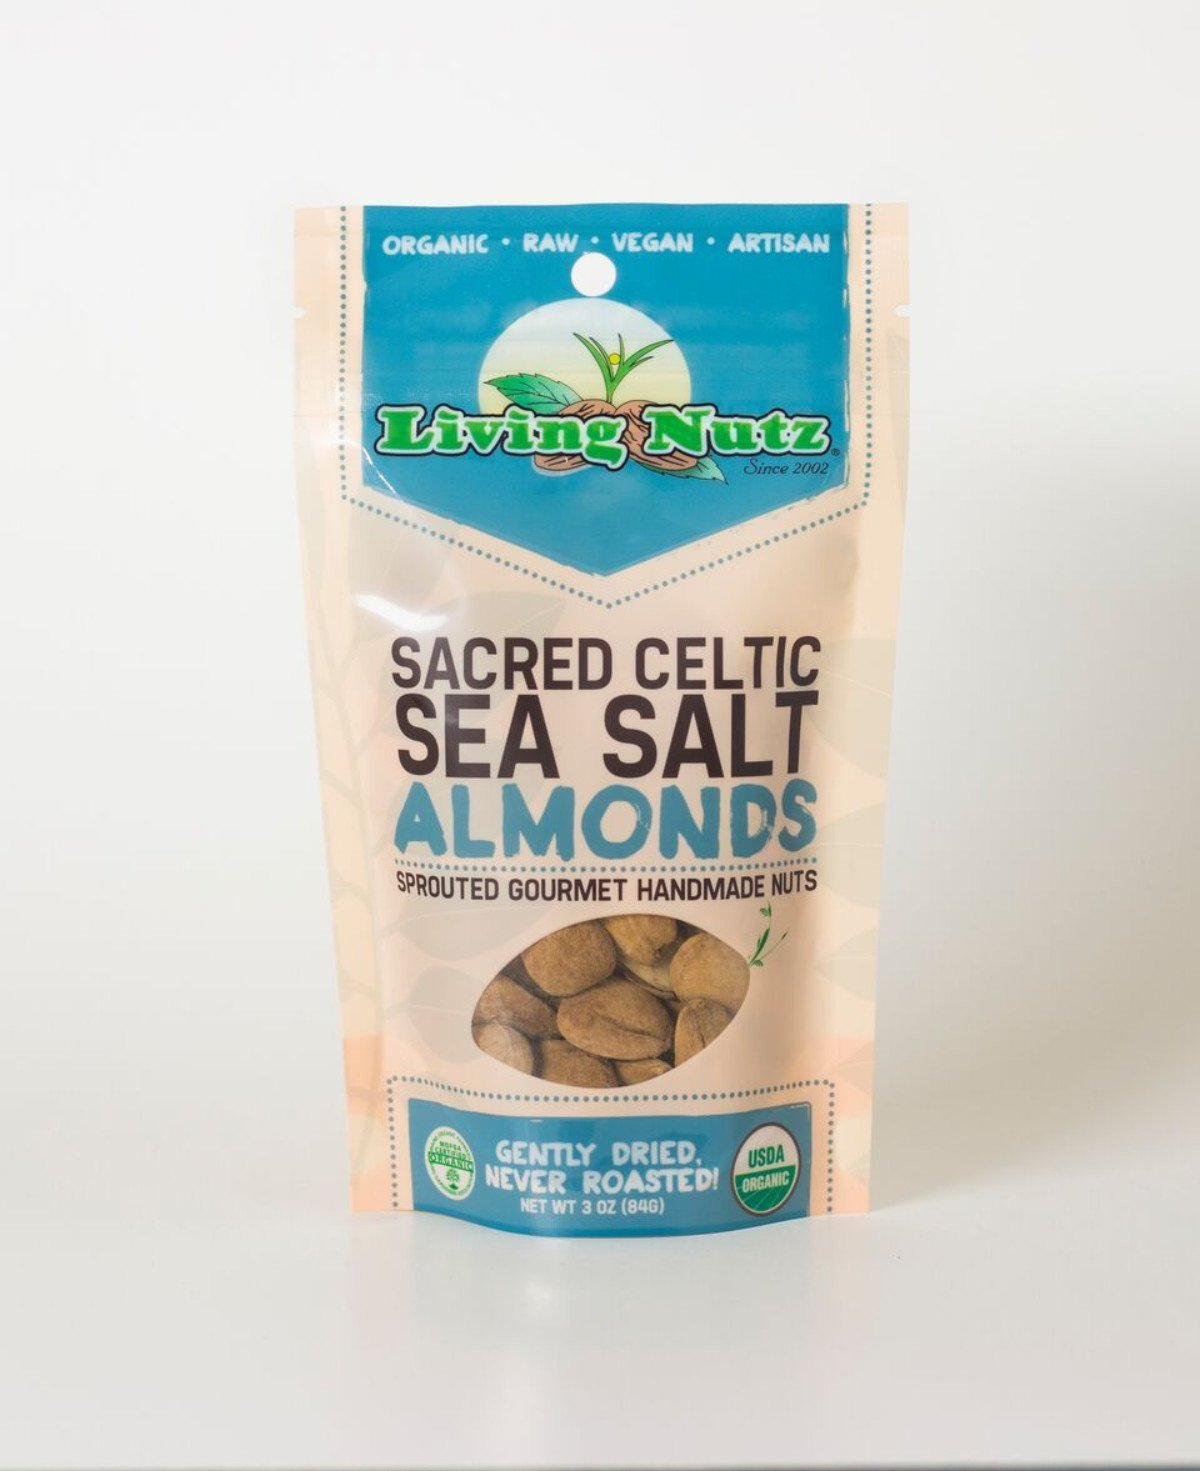 Organic raw sprouted nuts. Sprouted raw & unpasteurized almonds with sea salt. Living Nutz organic snacks.